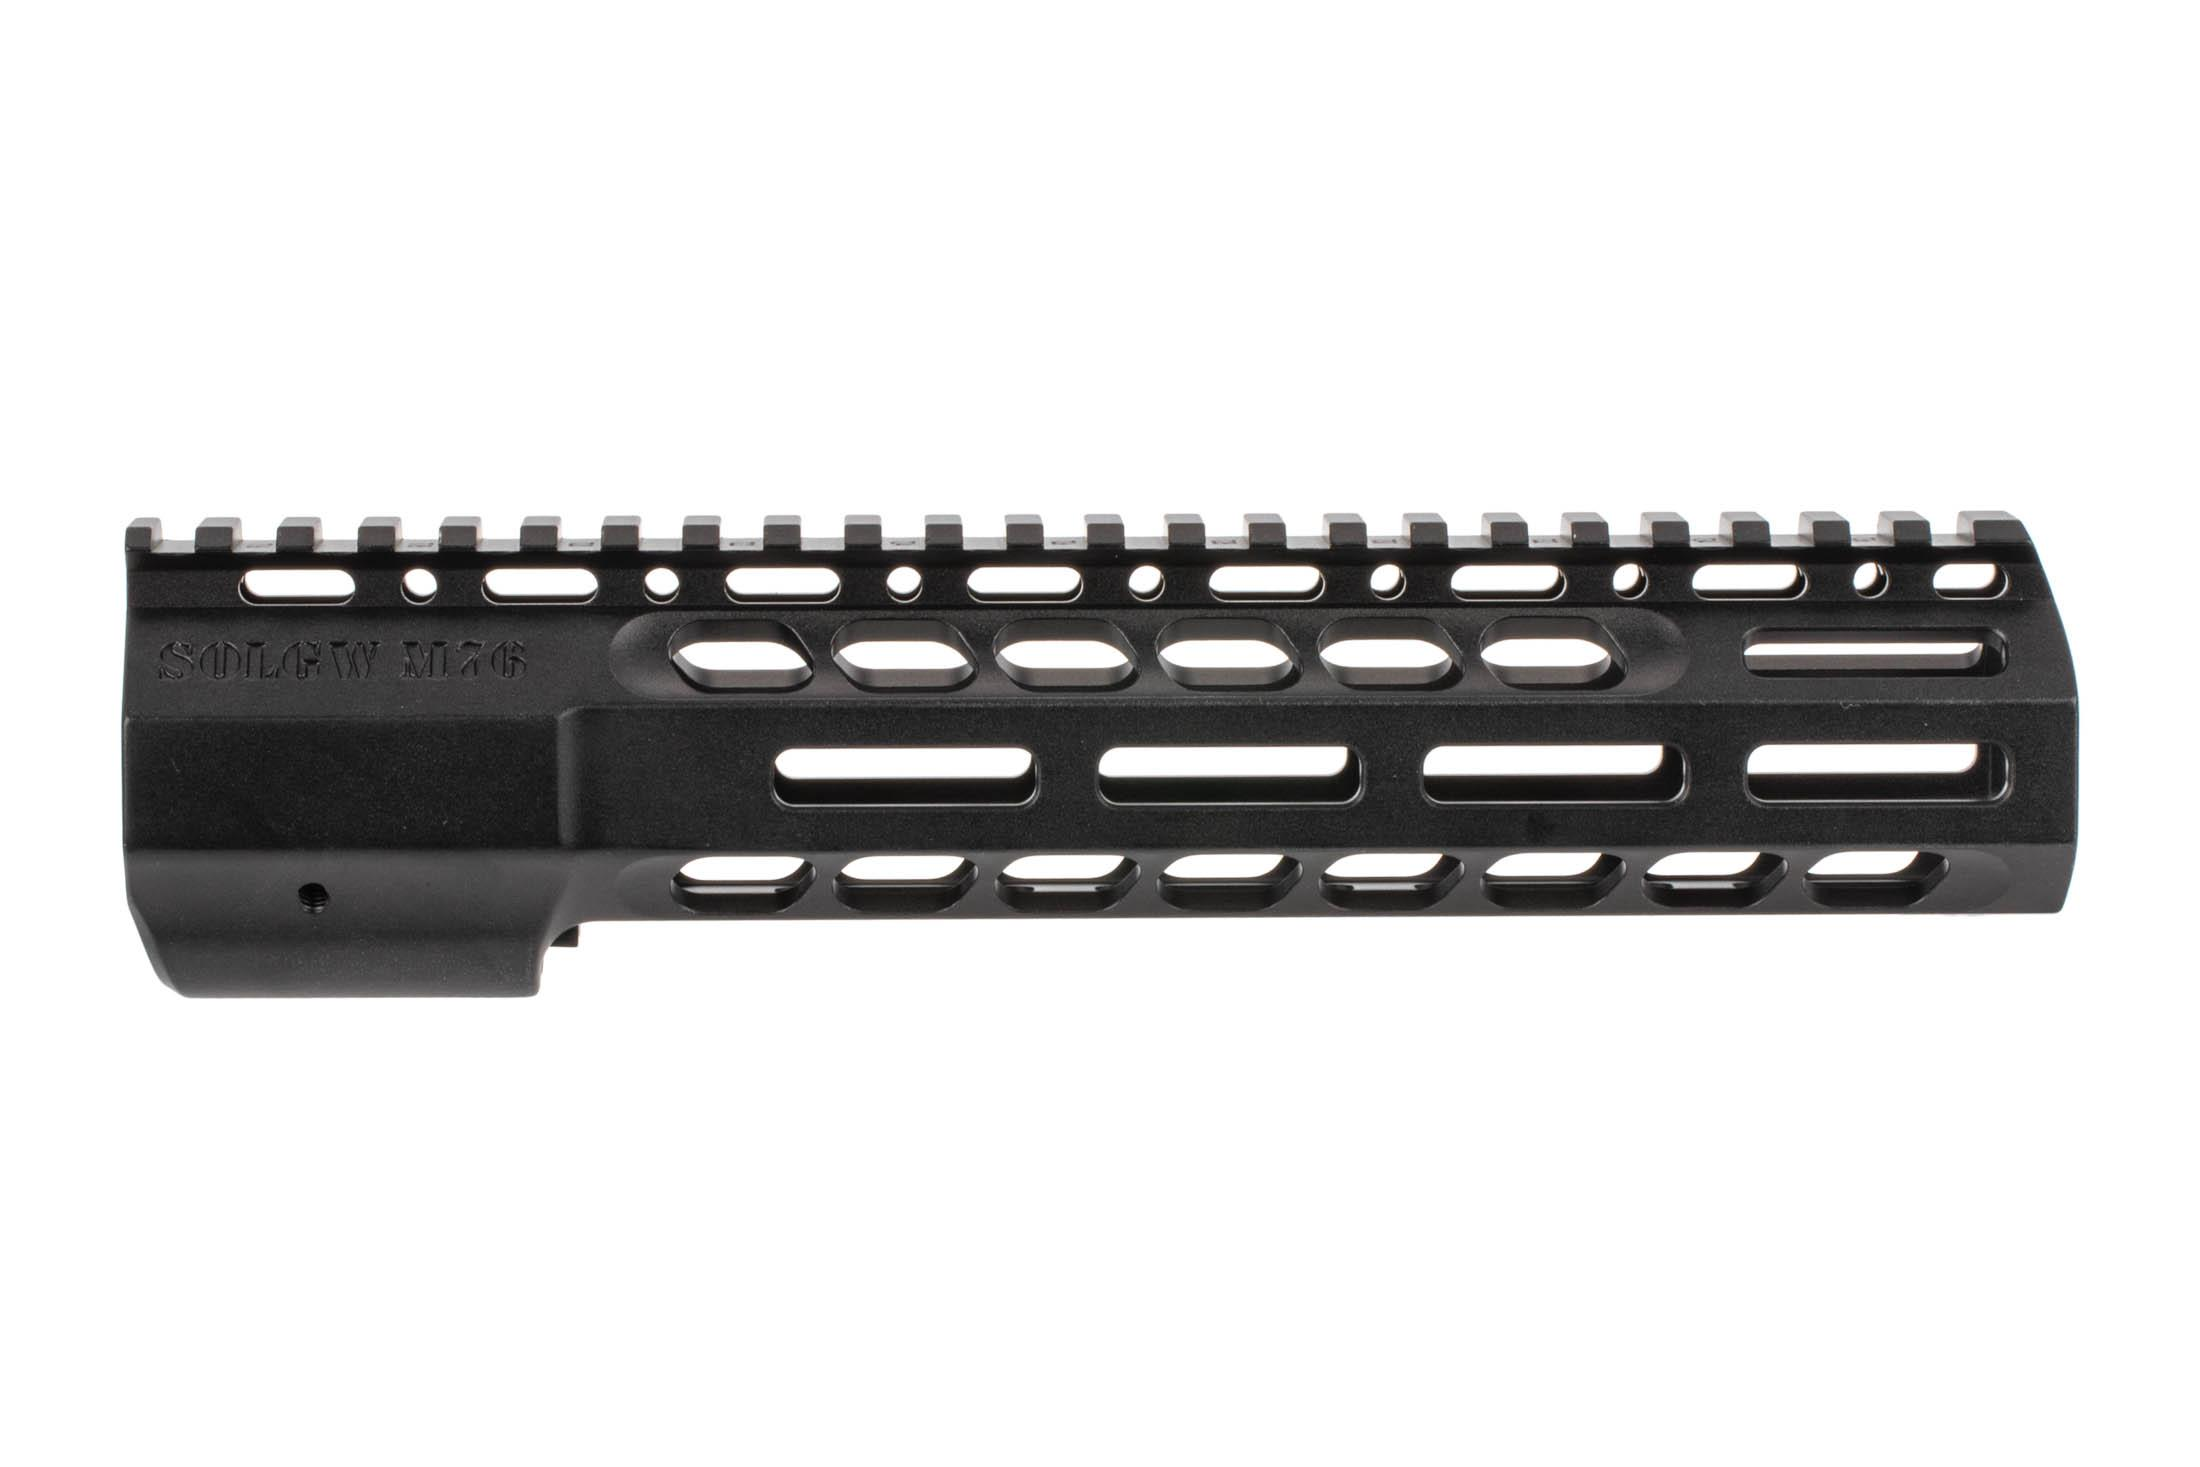 The Sons of Liberty Gun Works M76 Wedgelock Handguard 9.5 features M-LOK attachment slots